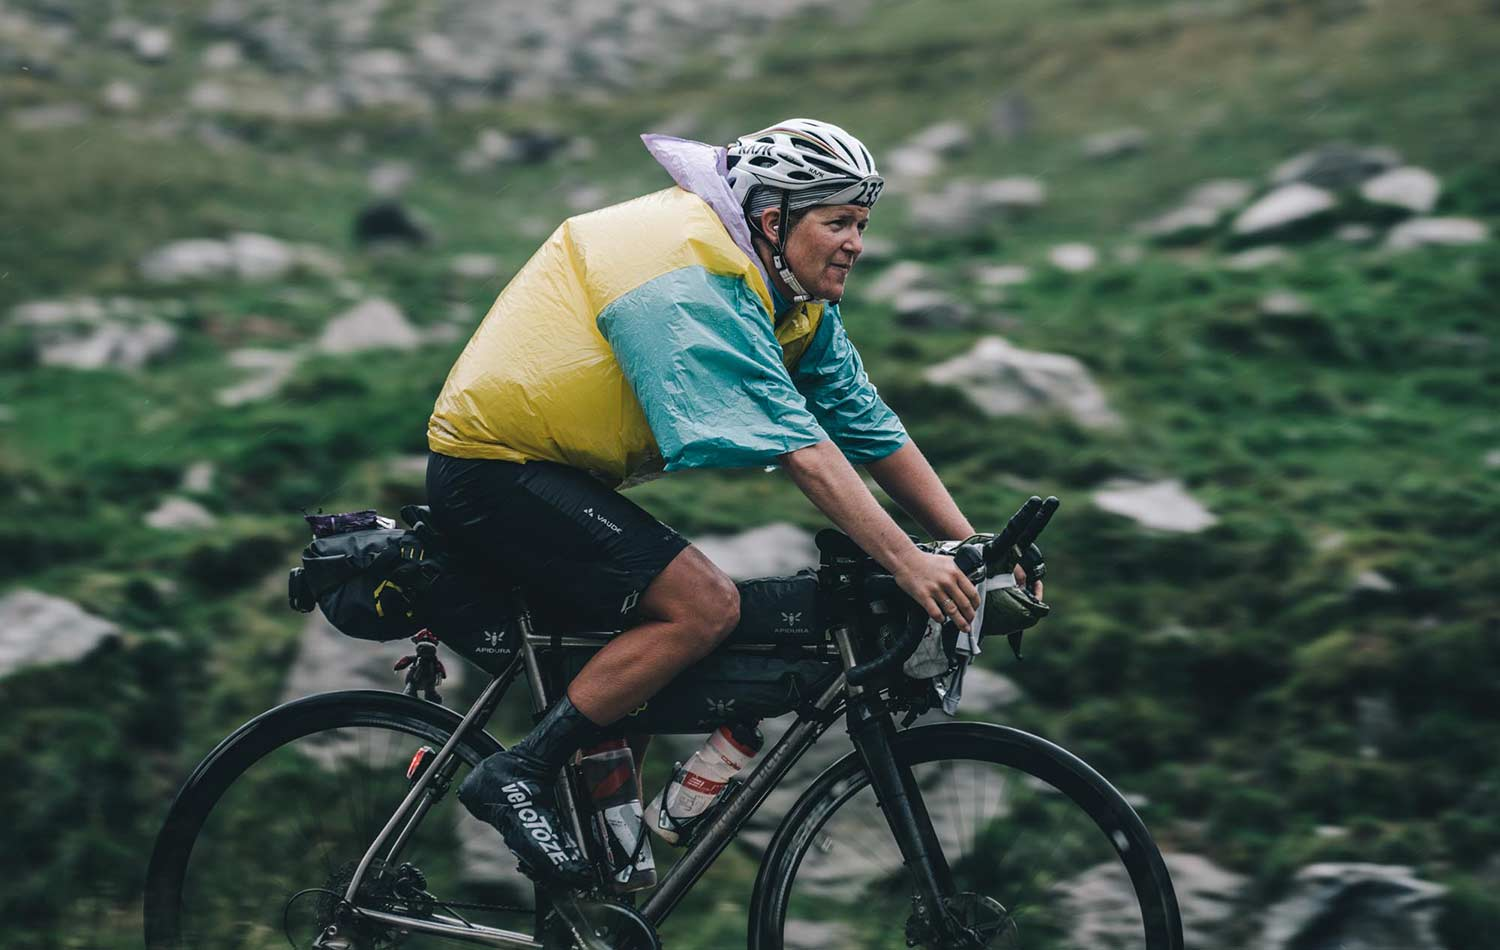 A person bikepacking with a Saddle and frame bag, wearing a disposable ponchos